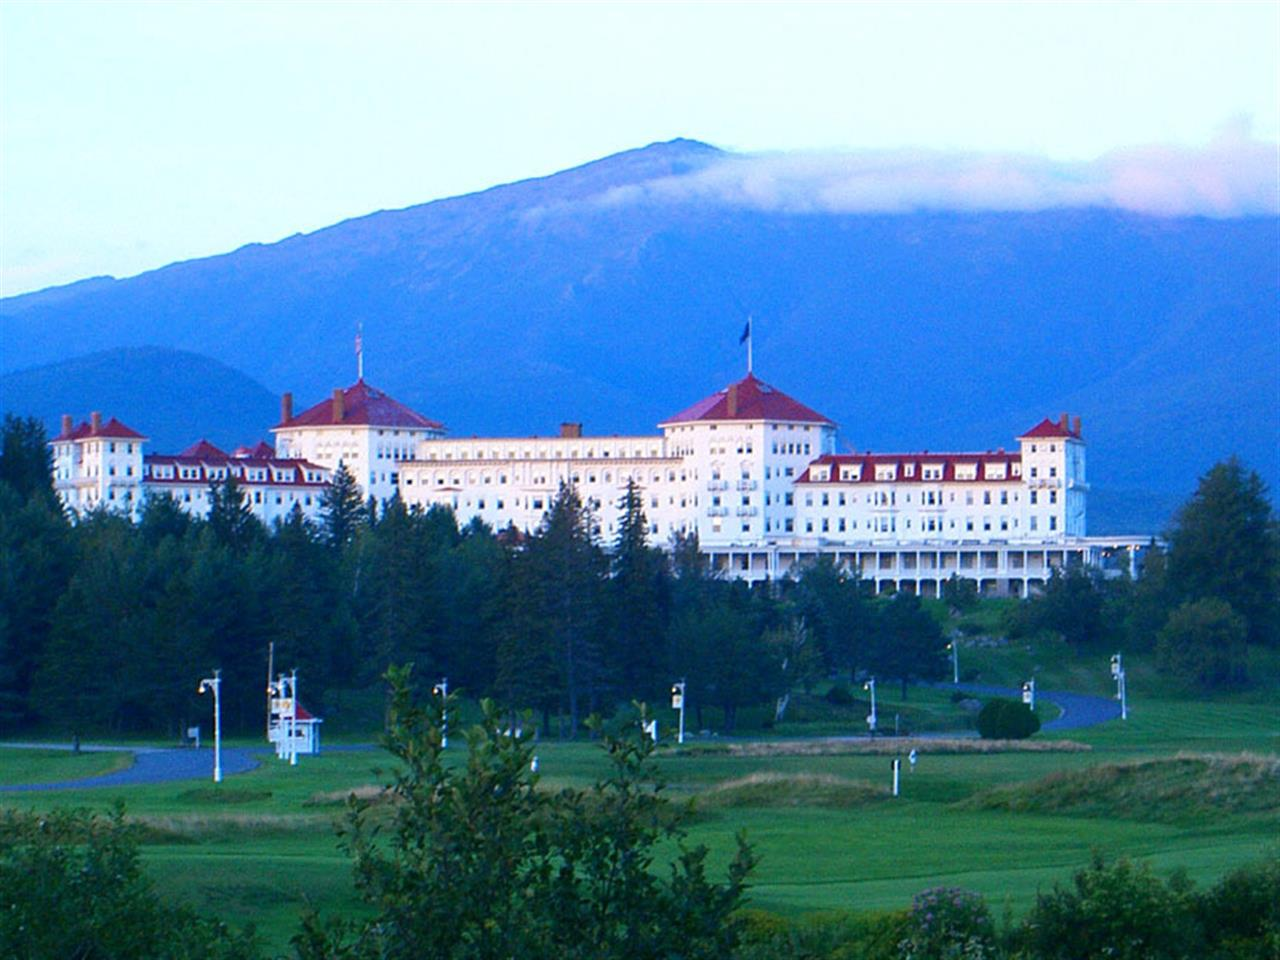 Mt. Washington Hotel, Bretton Woods, NH This iconic Hotel with Mt. Washington as its backdrop, is a popular destination for skiing, hiking, golfing, a spa day, or just hanging out. Truly beautiful!